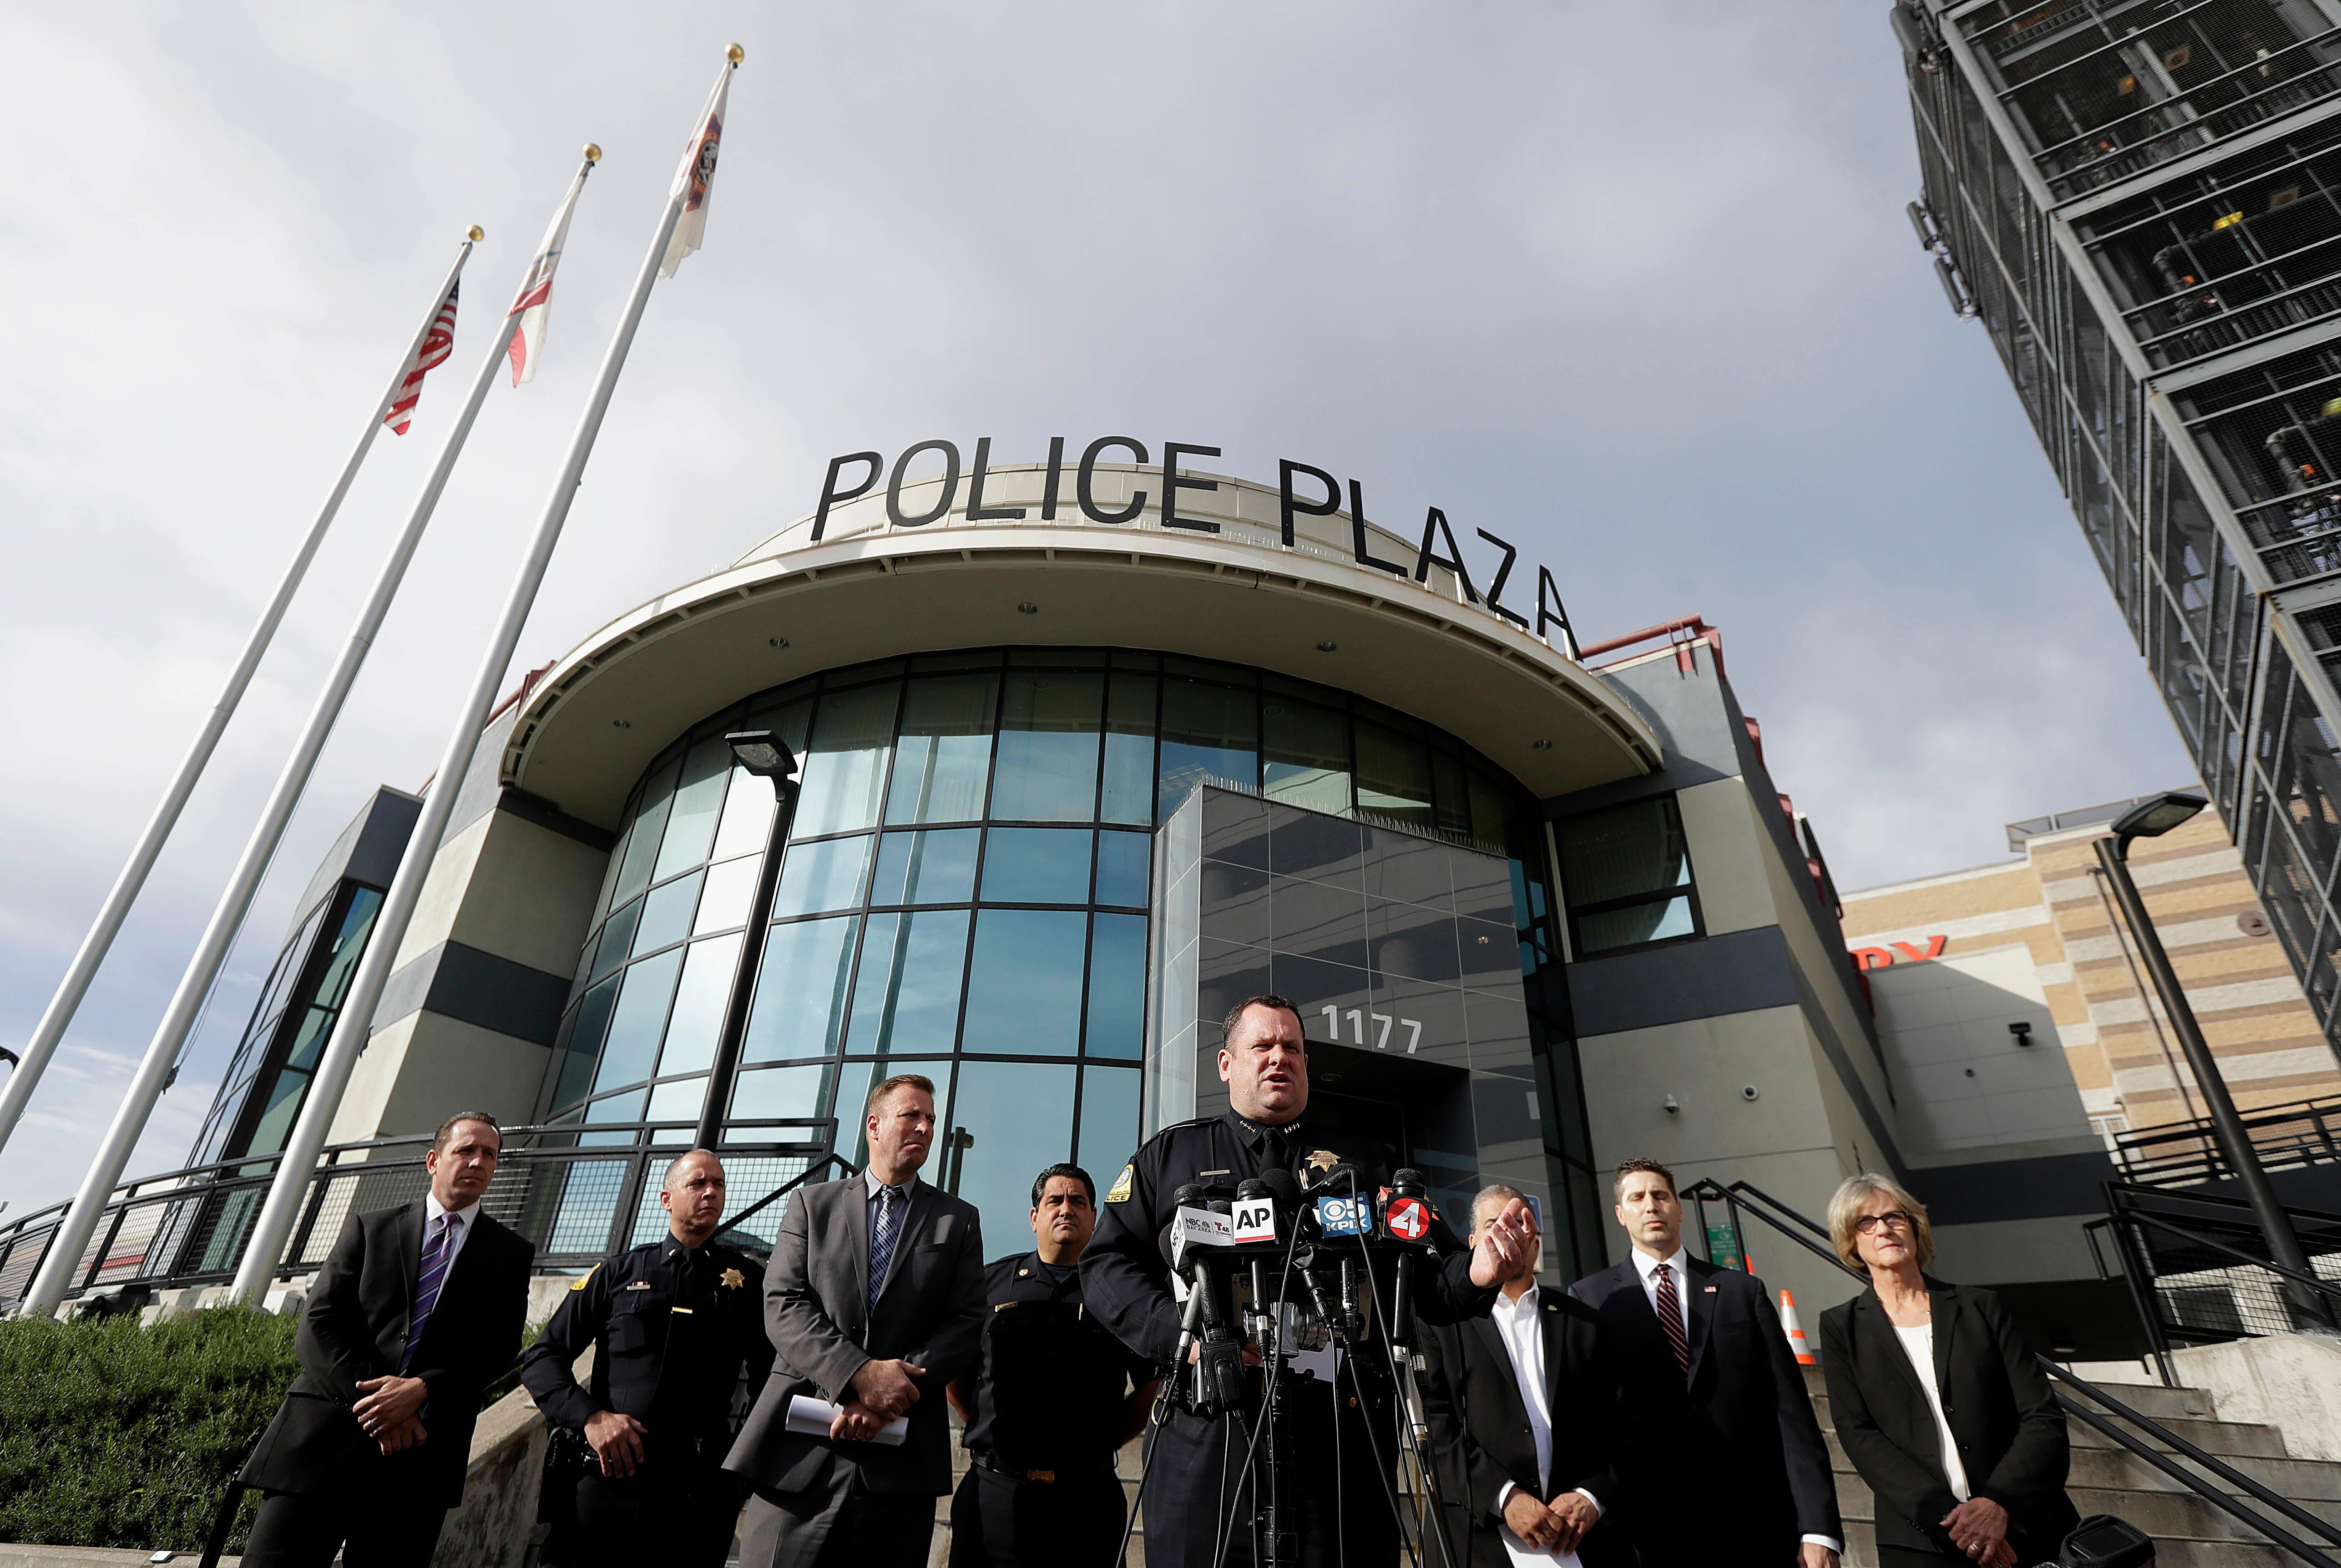 San Bruno Police Chief Ed Barberini, center, speaks at a news conference in San Bruno, Calif., Wednesday, April 4, 2018. A woman suspected of shooting three people at YouTube headquarters before killing herself was furious with the company because it had stopped paying her for videos she posted on the platform, her father said Tuesday, April 3, 2018. (AP Photo/Jeff Chiu)